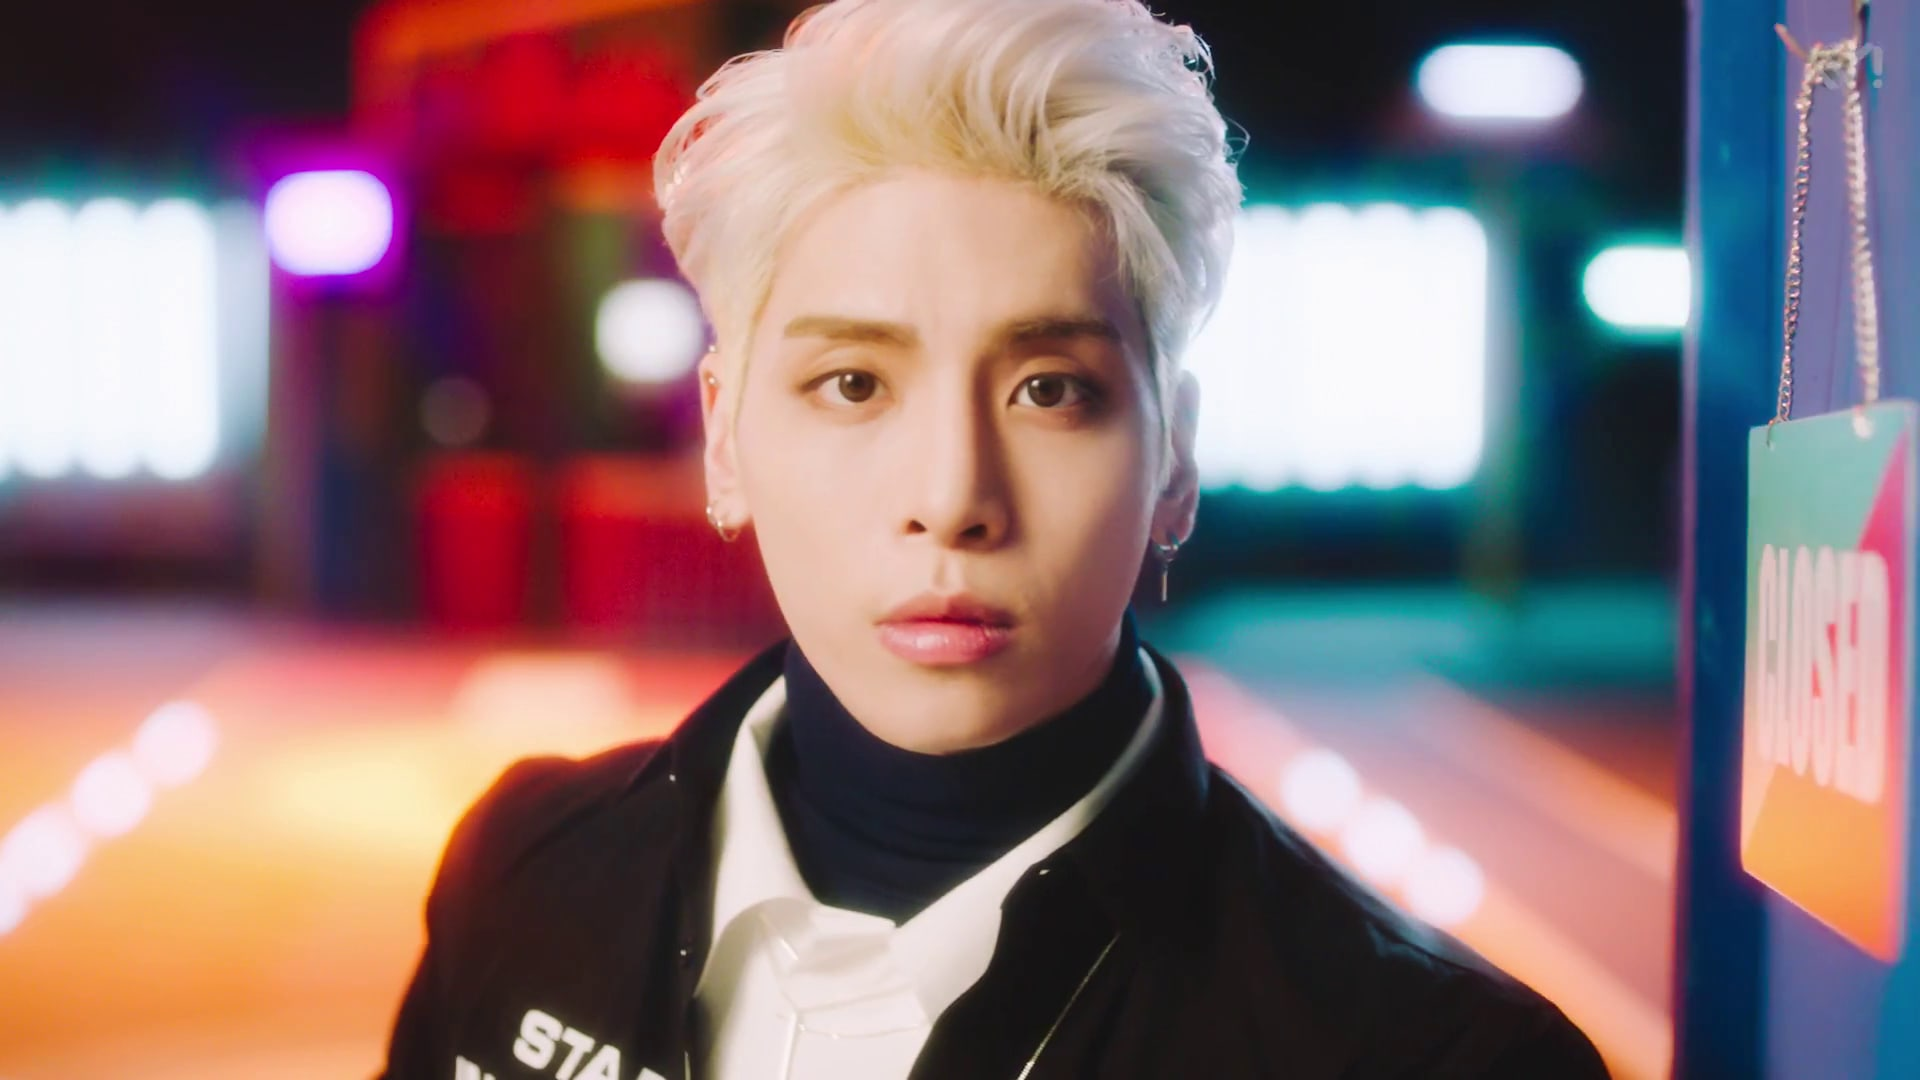 Watch SHINee U0026 39 S Jonghyun Is Forever Shining In New MV Soompi